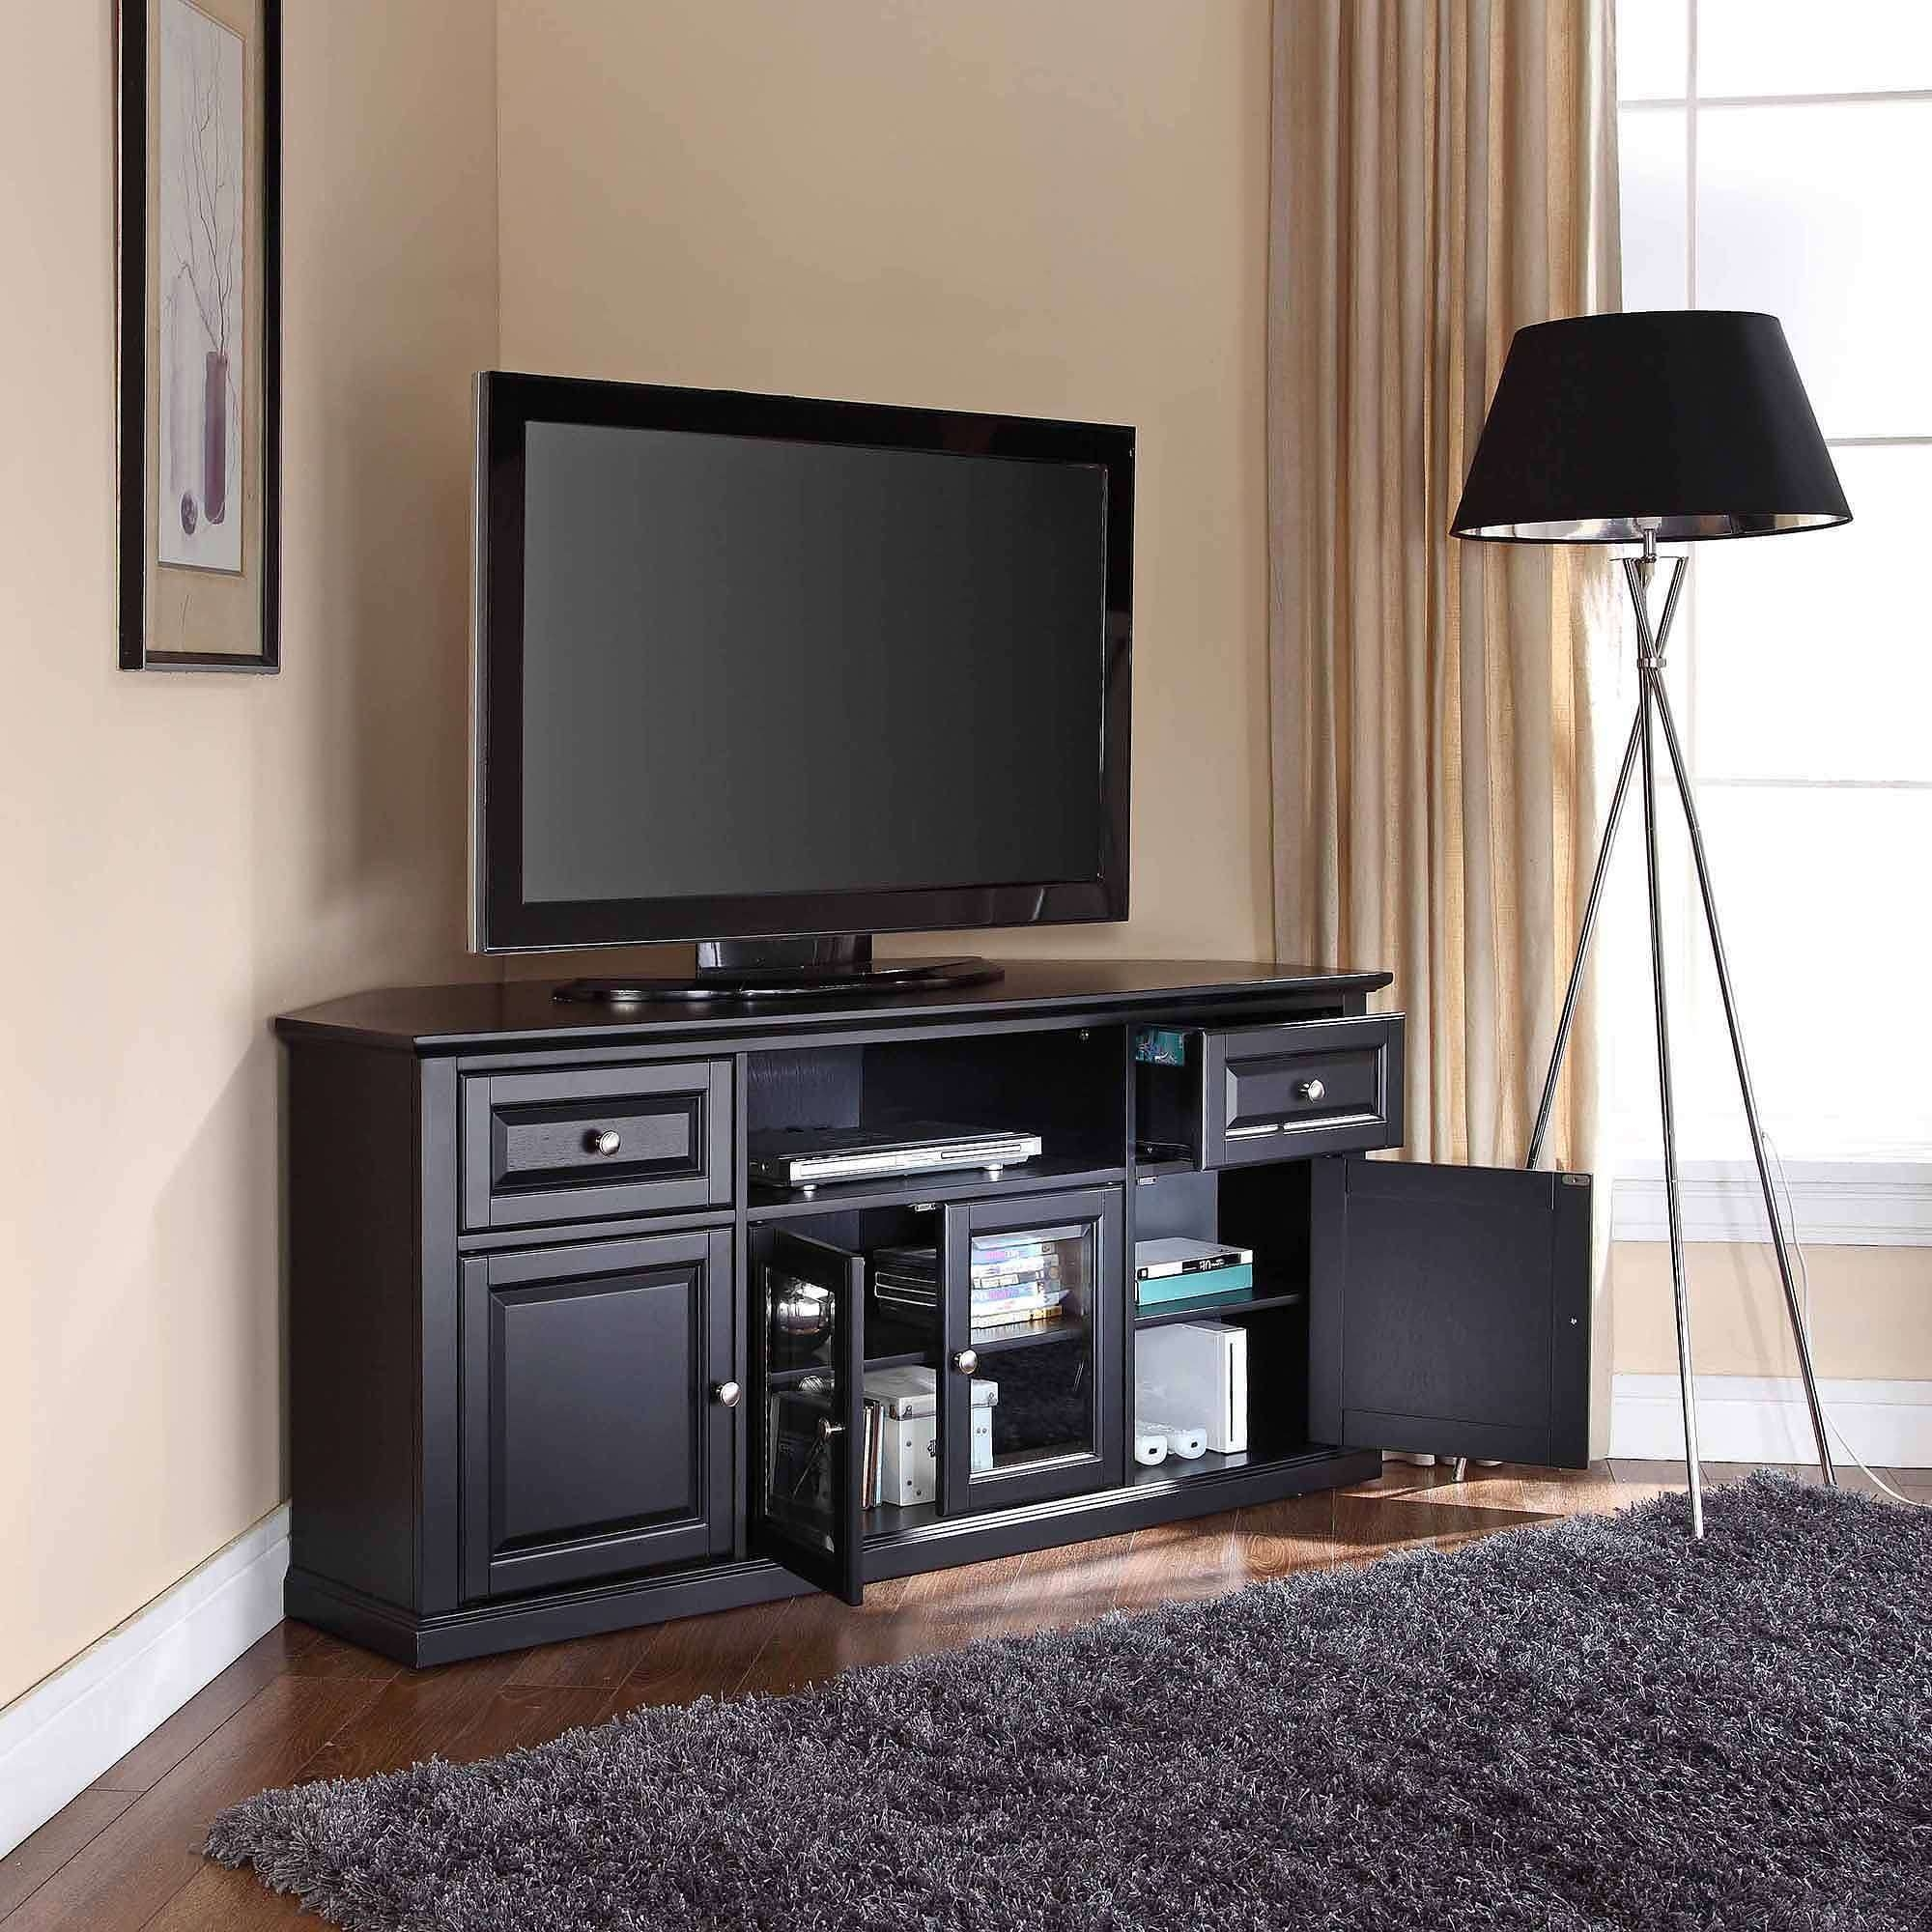 """Crosley Furniture Corner Tv Stand For Tvs Up To 60"""" – Walmart Throughout Corner Tv Stands With Drawers (View 4 of 15)"""